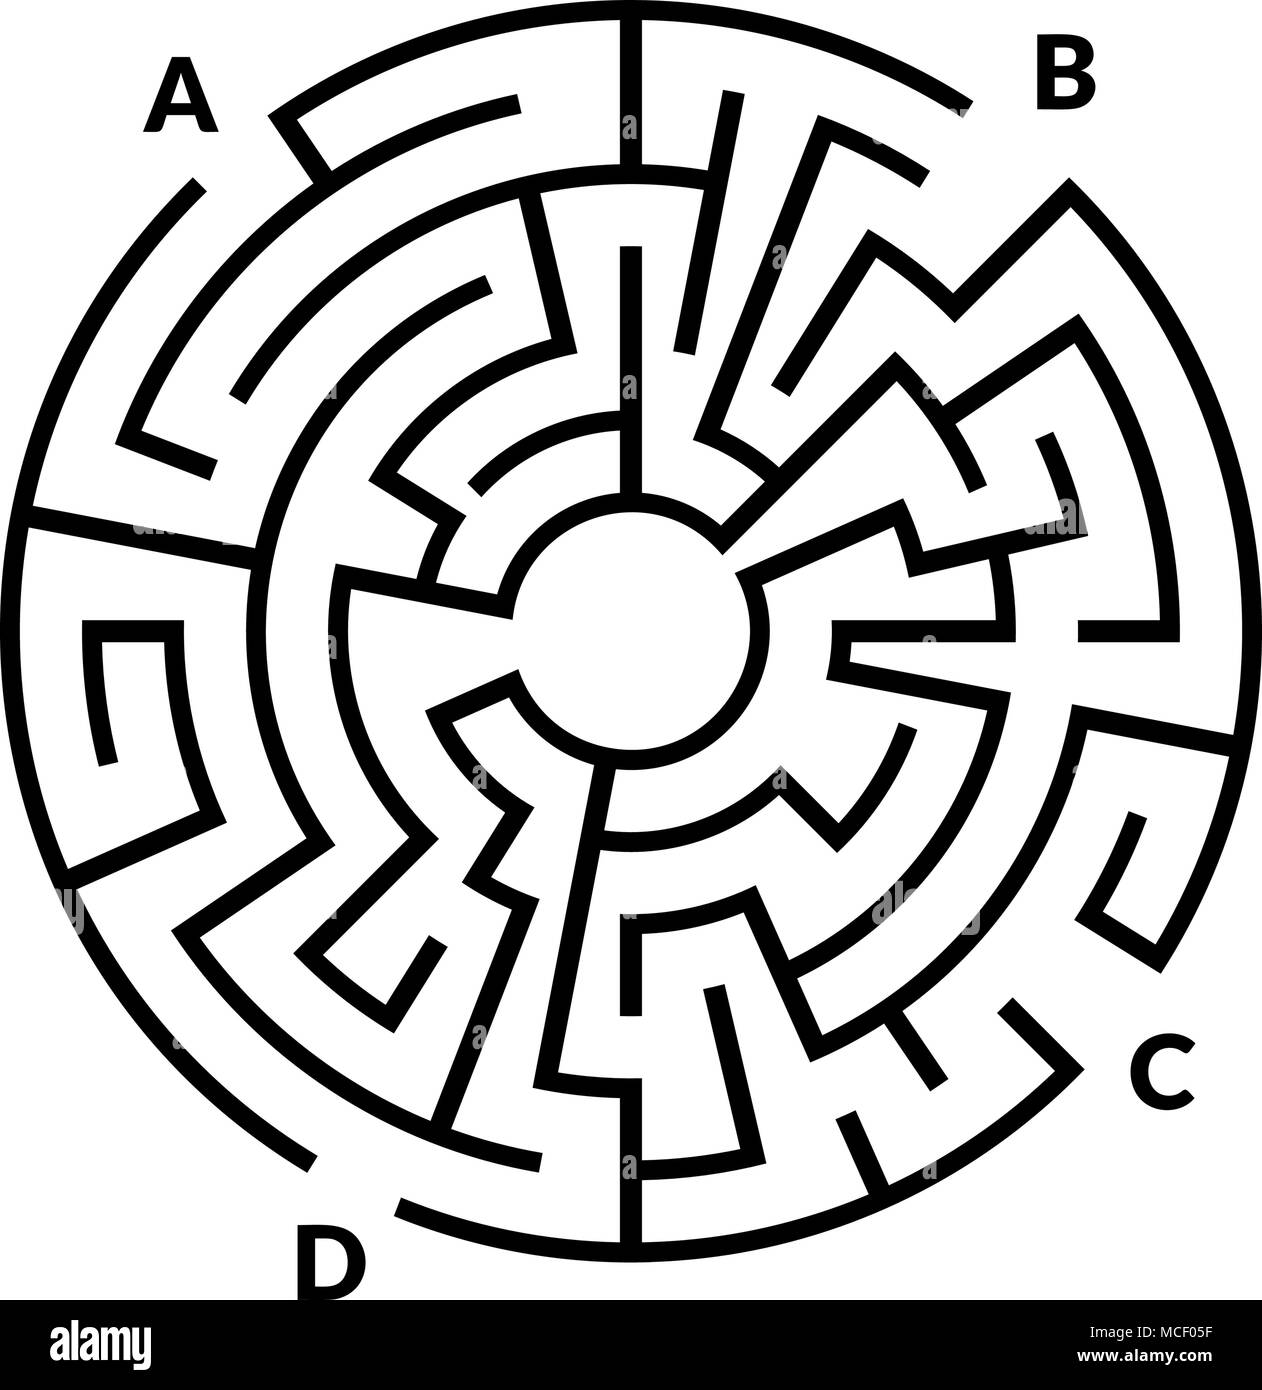 circular maze game isolated on white background stock vector art